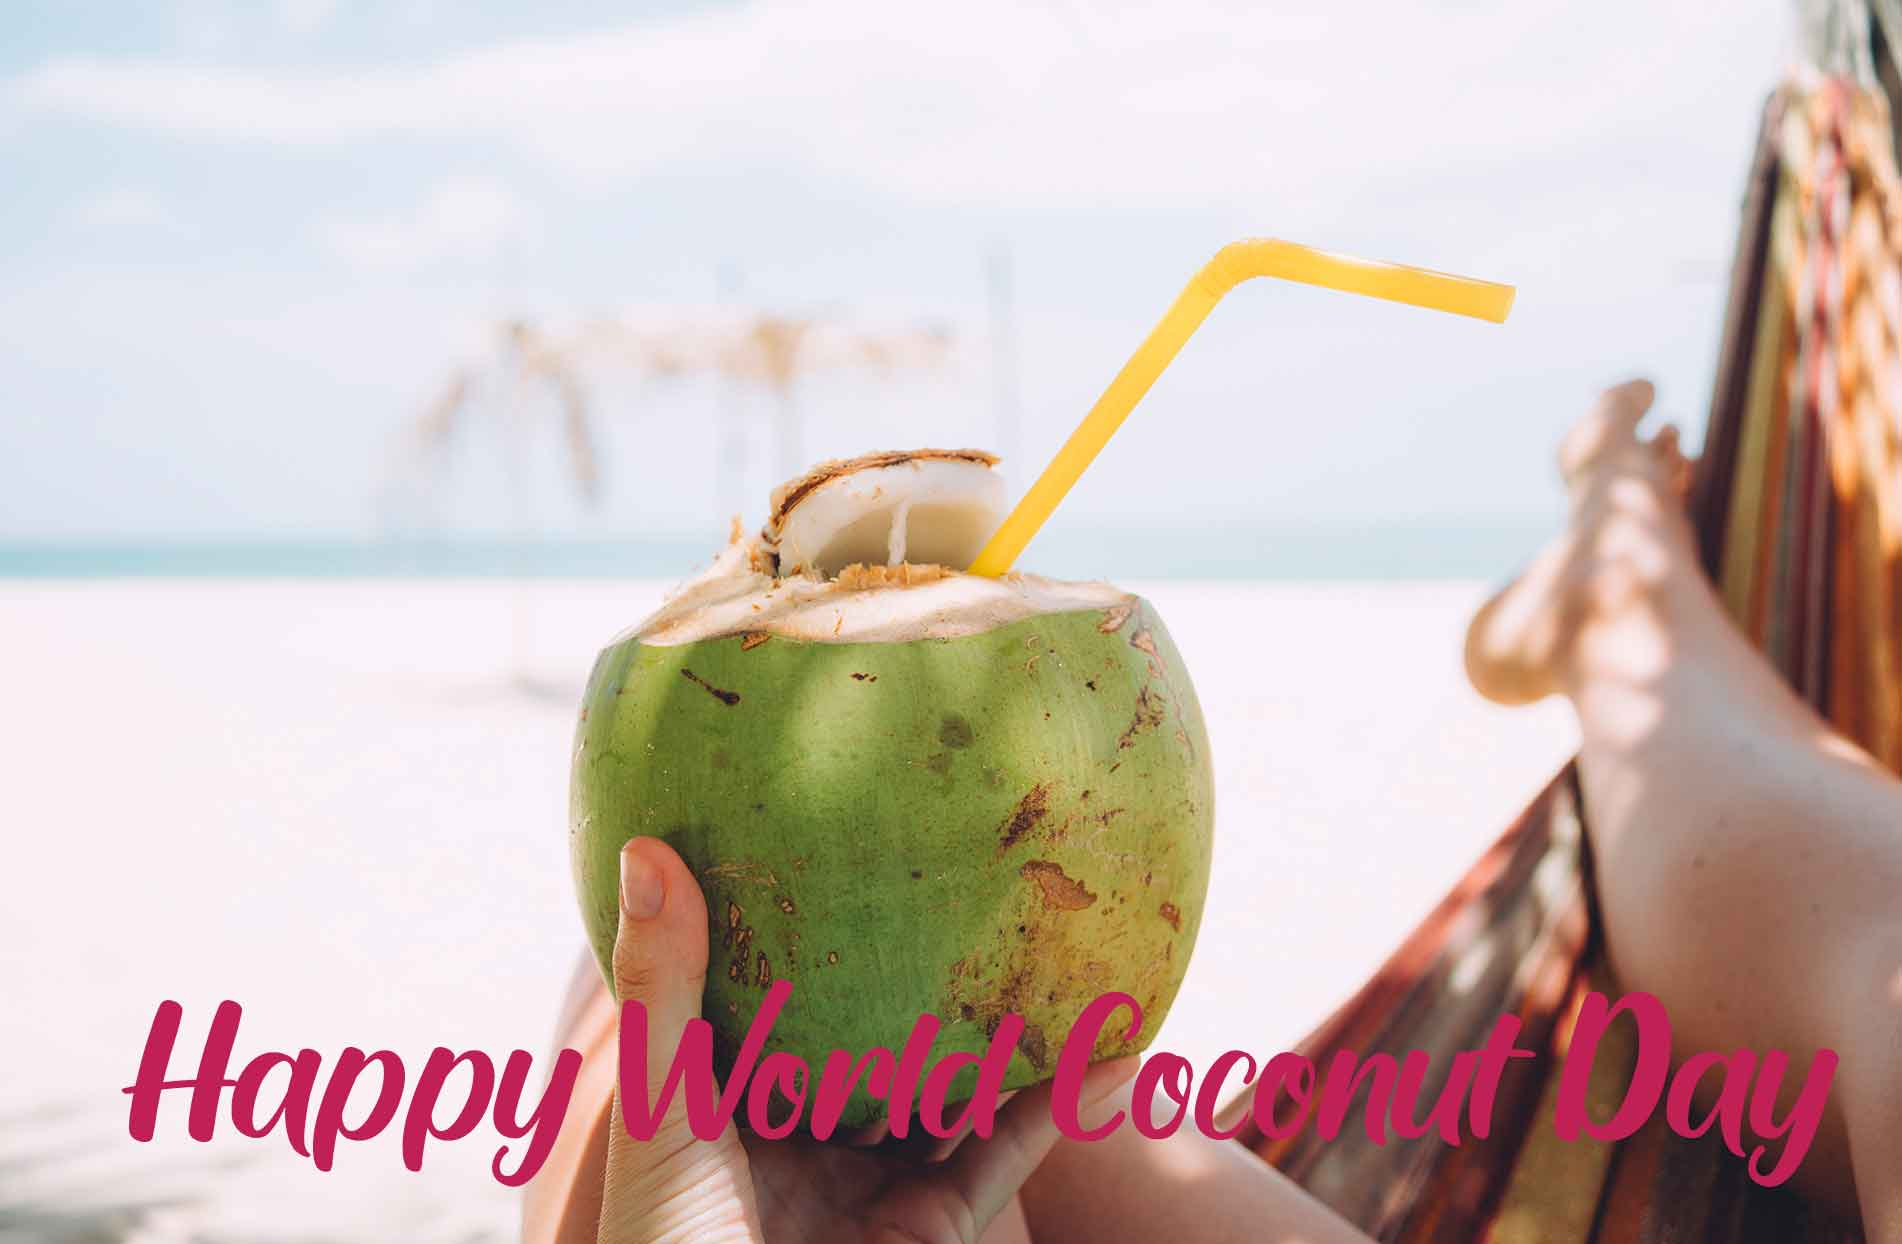 World Coconut DayQuotes Wishes : World Coconut Day 2020 Theme, SMS, Messages, Greetings HD Images, Wallpapers